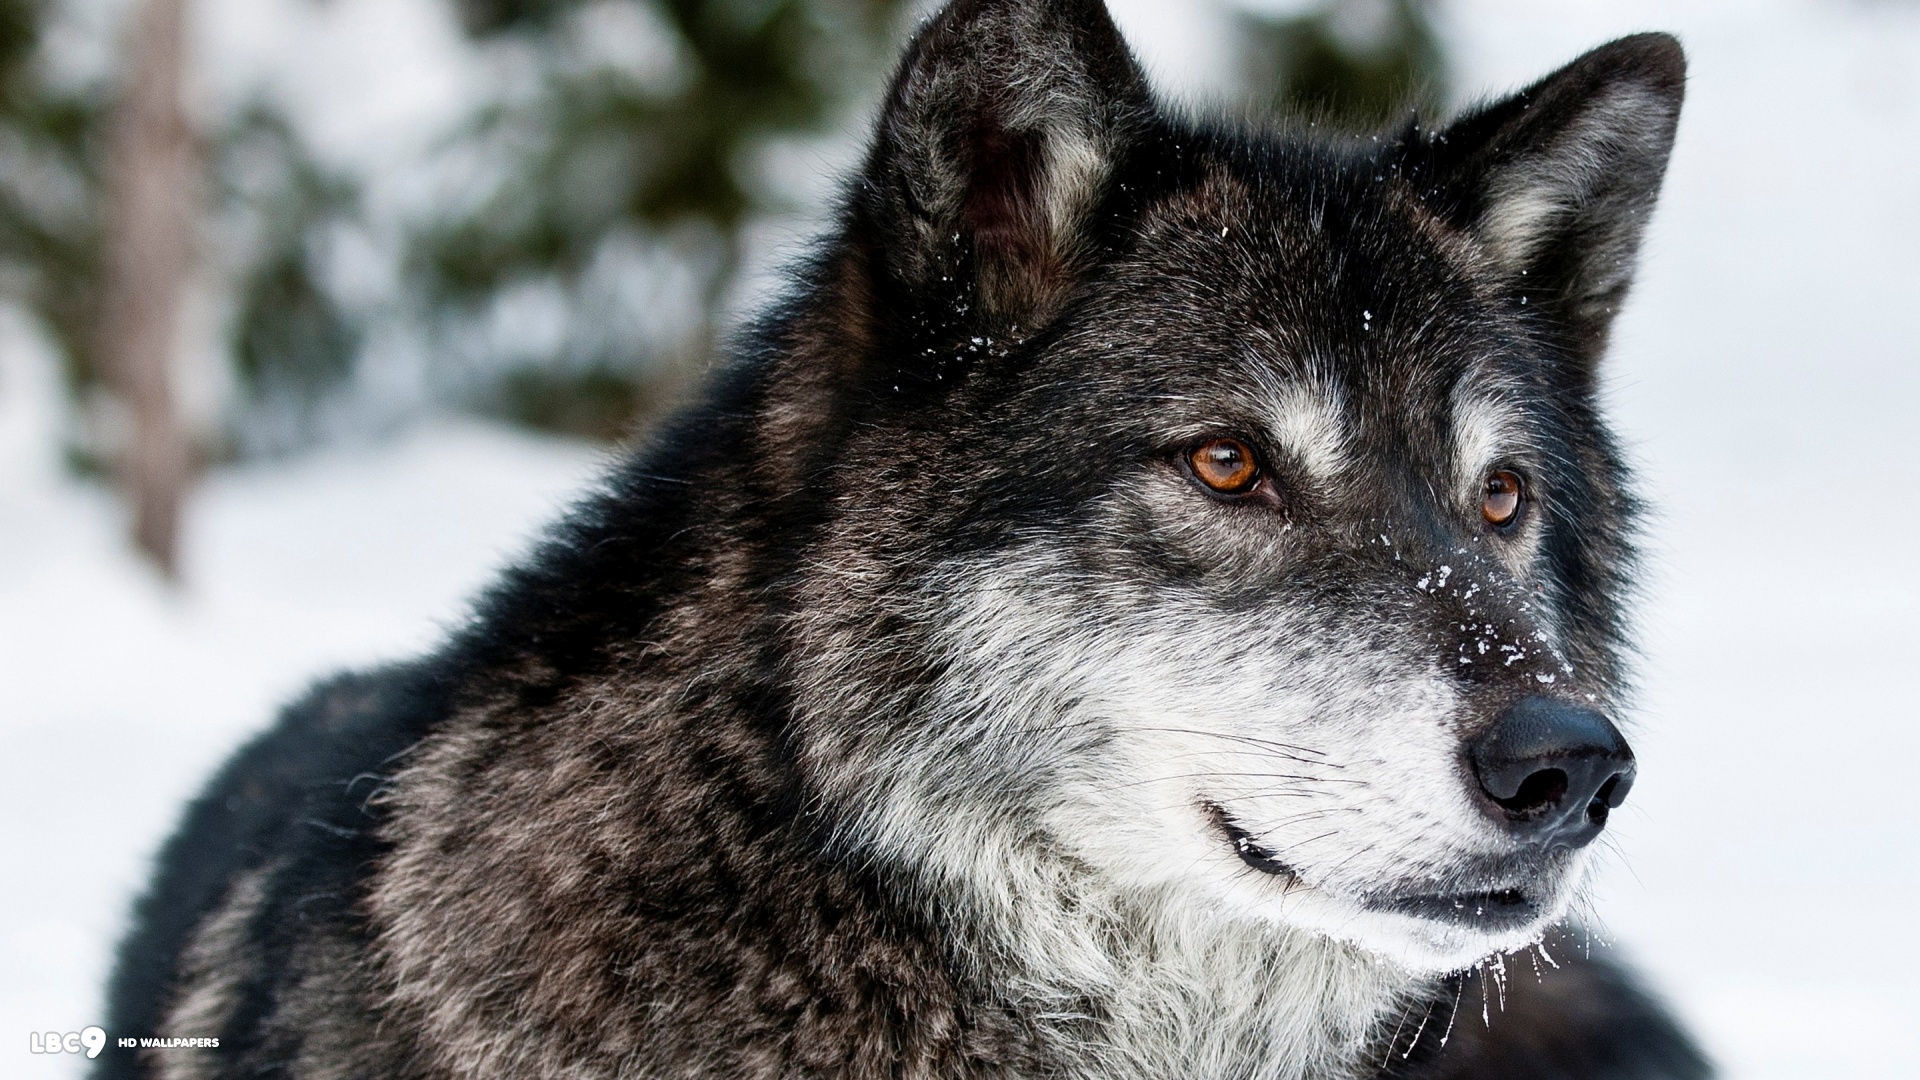 Must see Gray Wolf Wallpaper Majestic - 689619-majestic-wolf-wallpaper-1920x1080-for-samsung-galaxy  You Should Have_20169.jpg